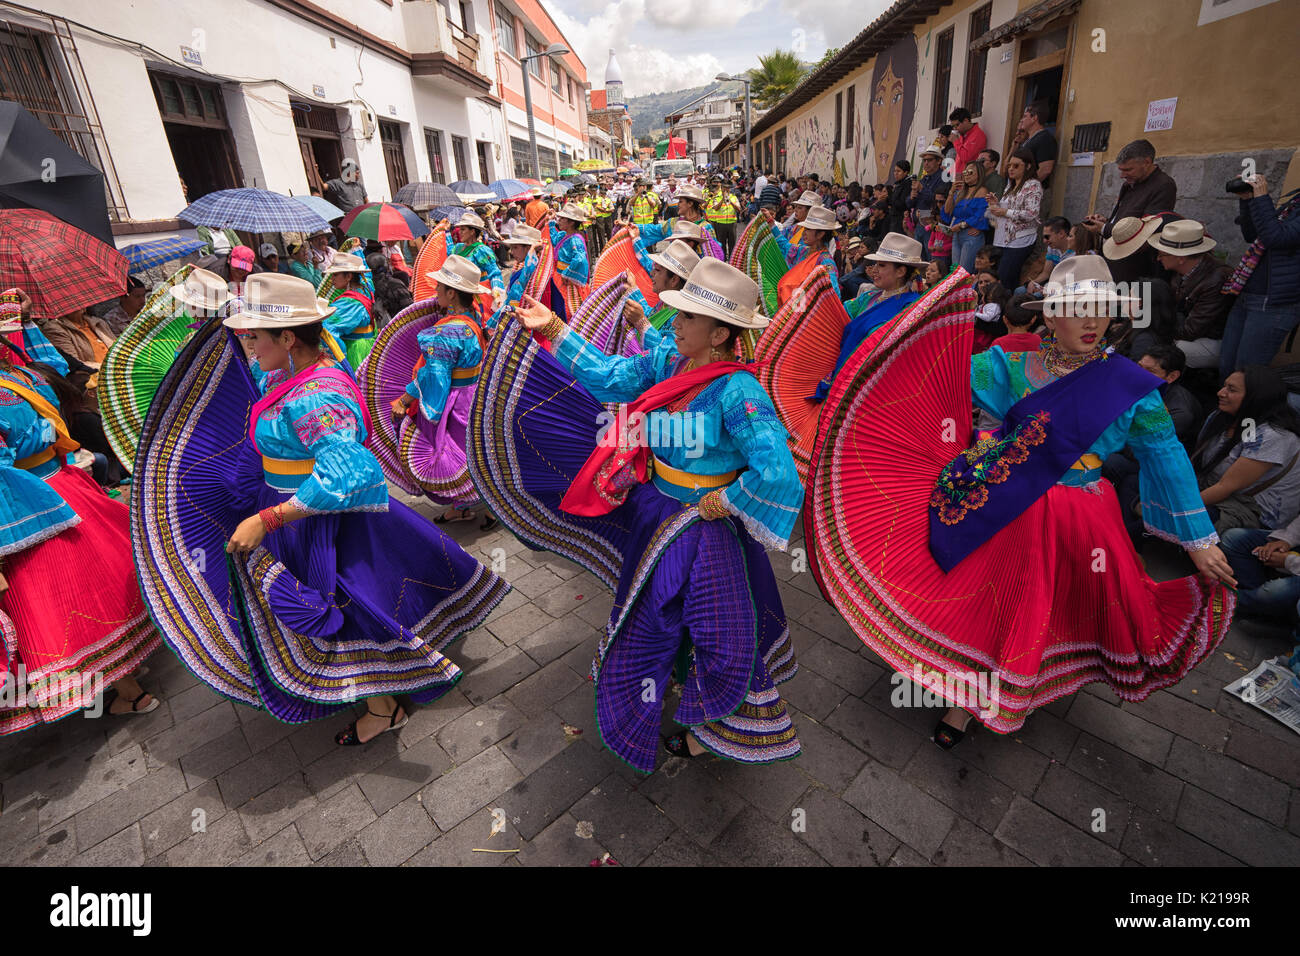 June 17, 2017 Pujili, Ecuador: indigenous women in brigthly colored clothng performing on the street during Corpus Christi parade - Stock Image